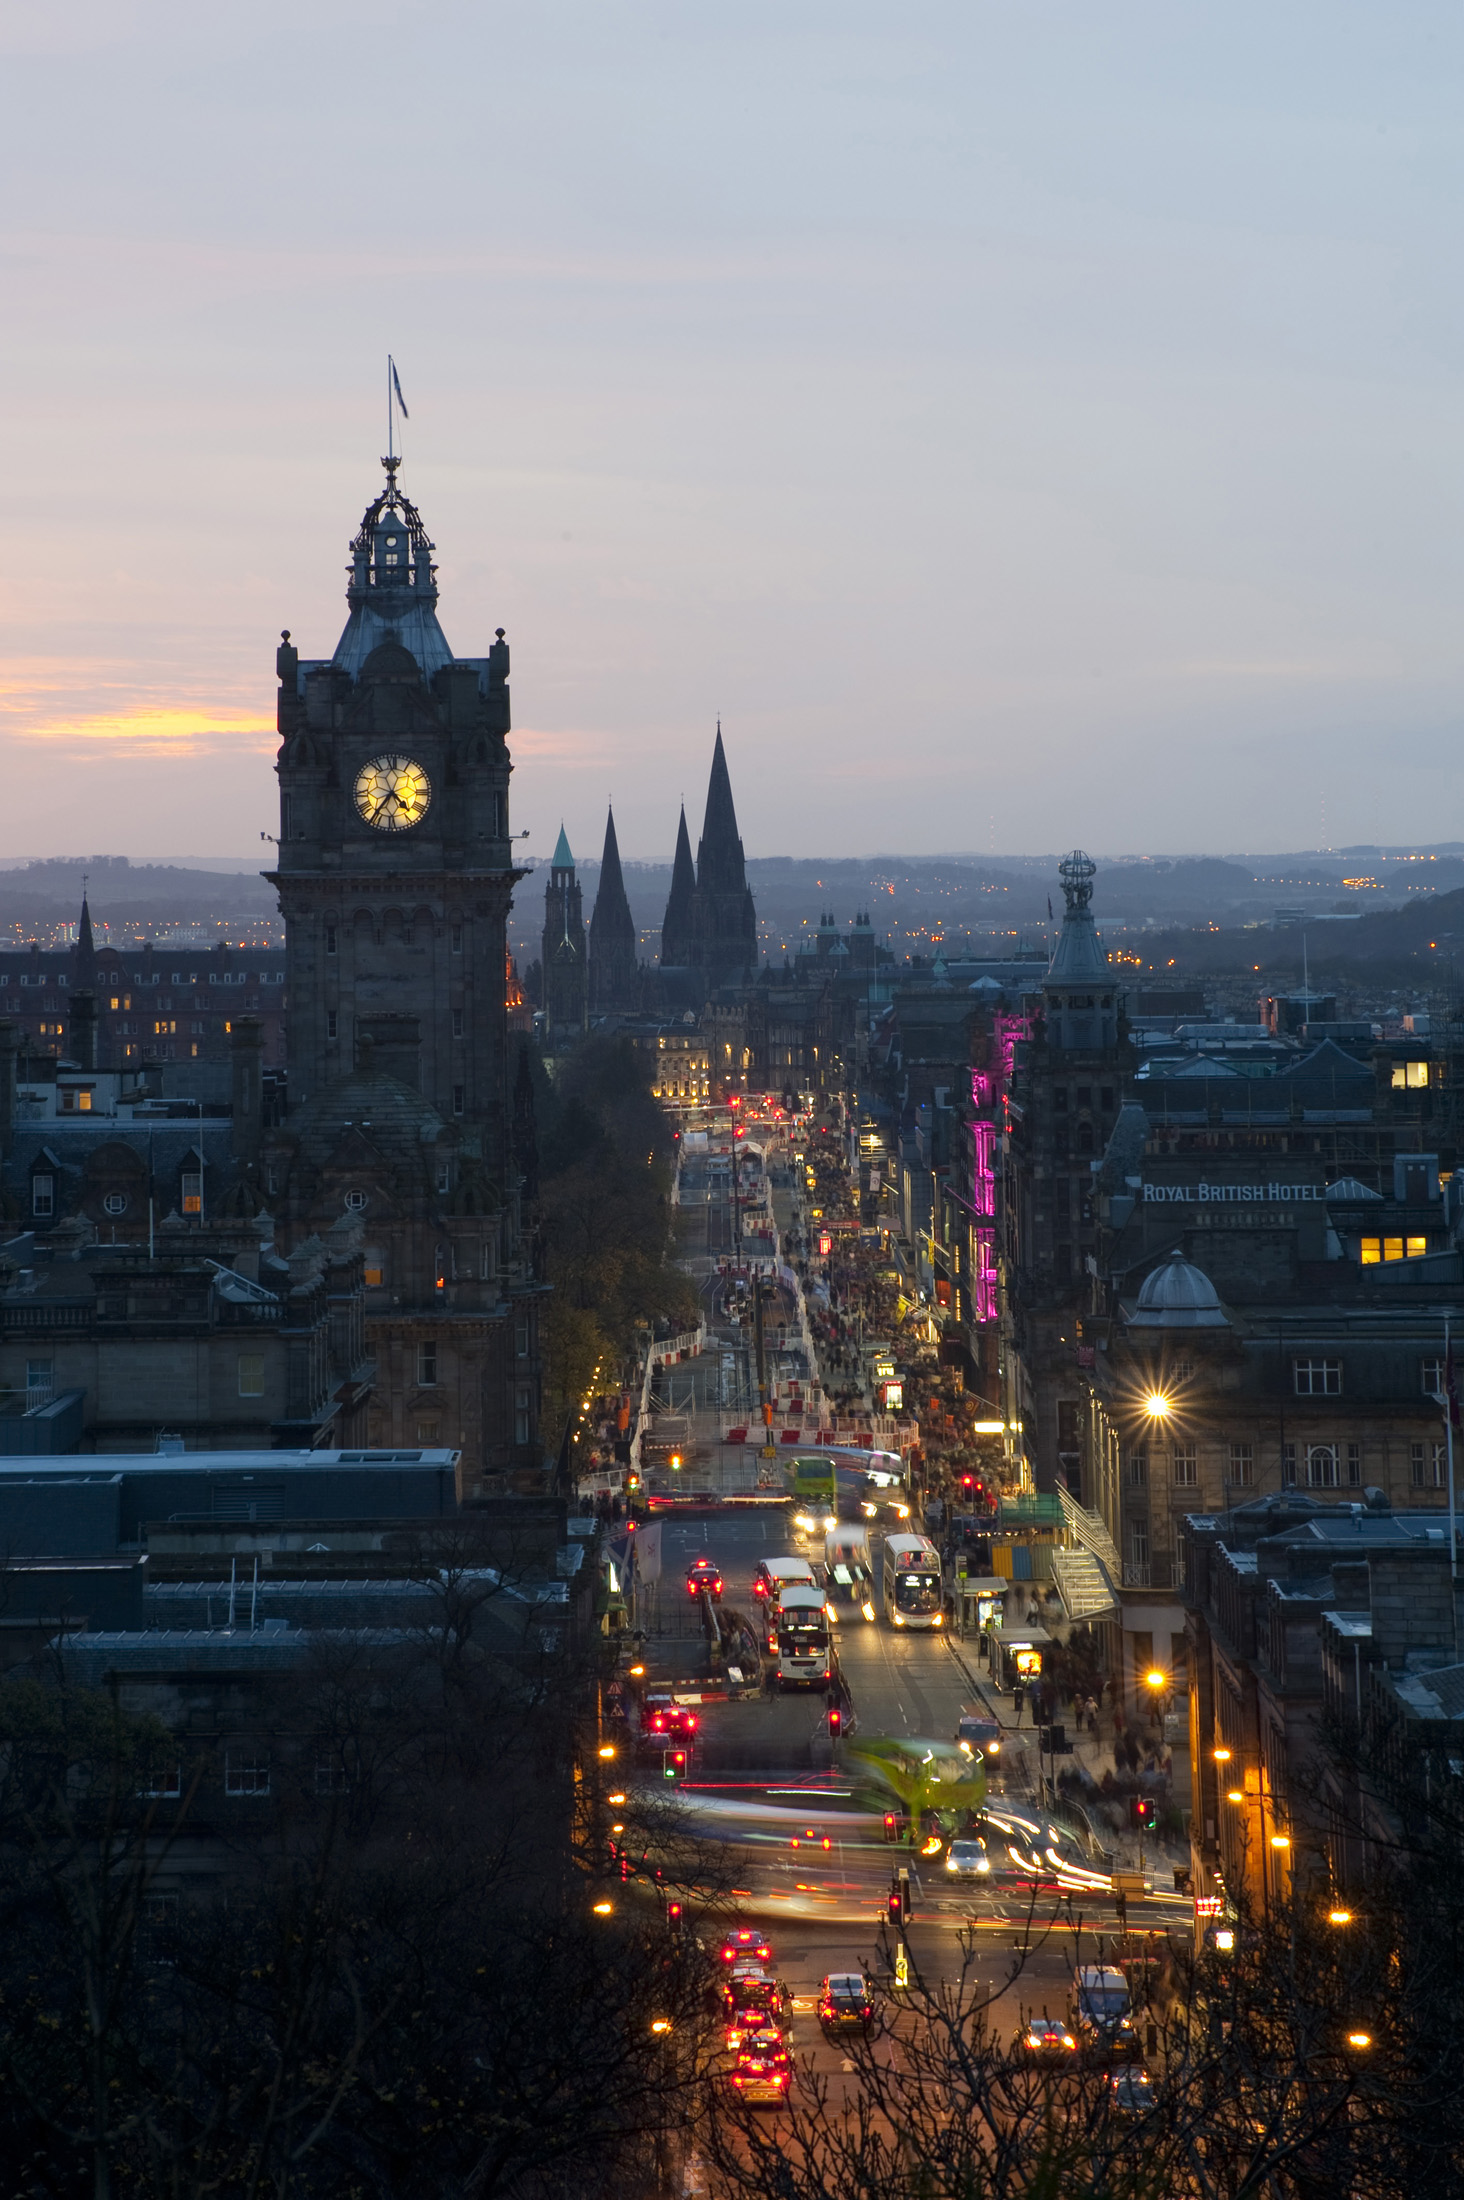 Bustling nighlife on Princes street Edinburgh at night